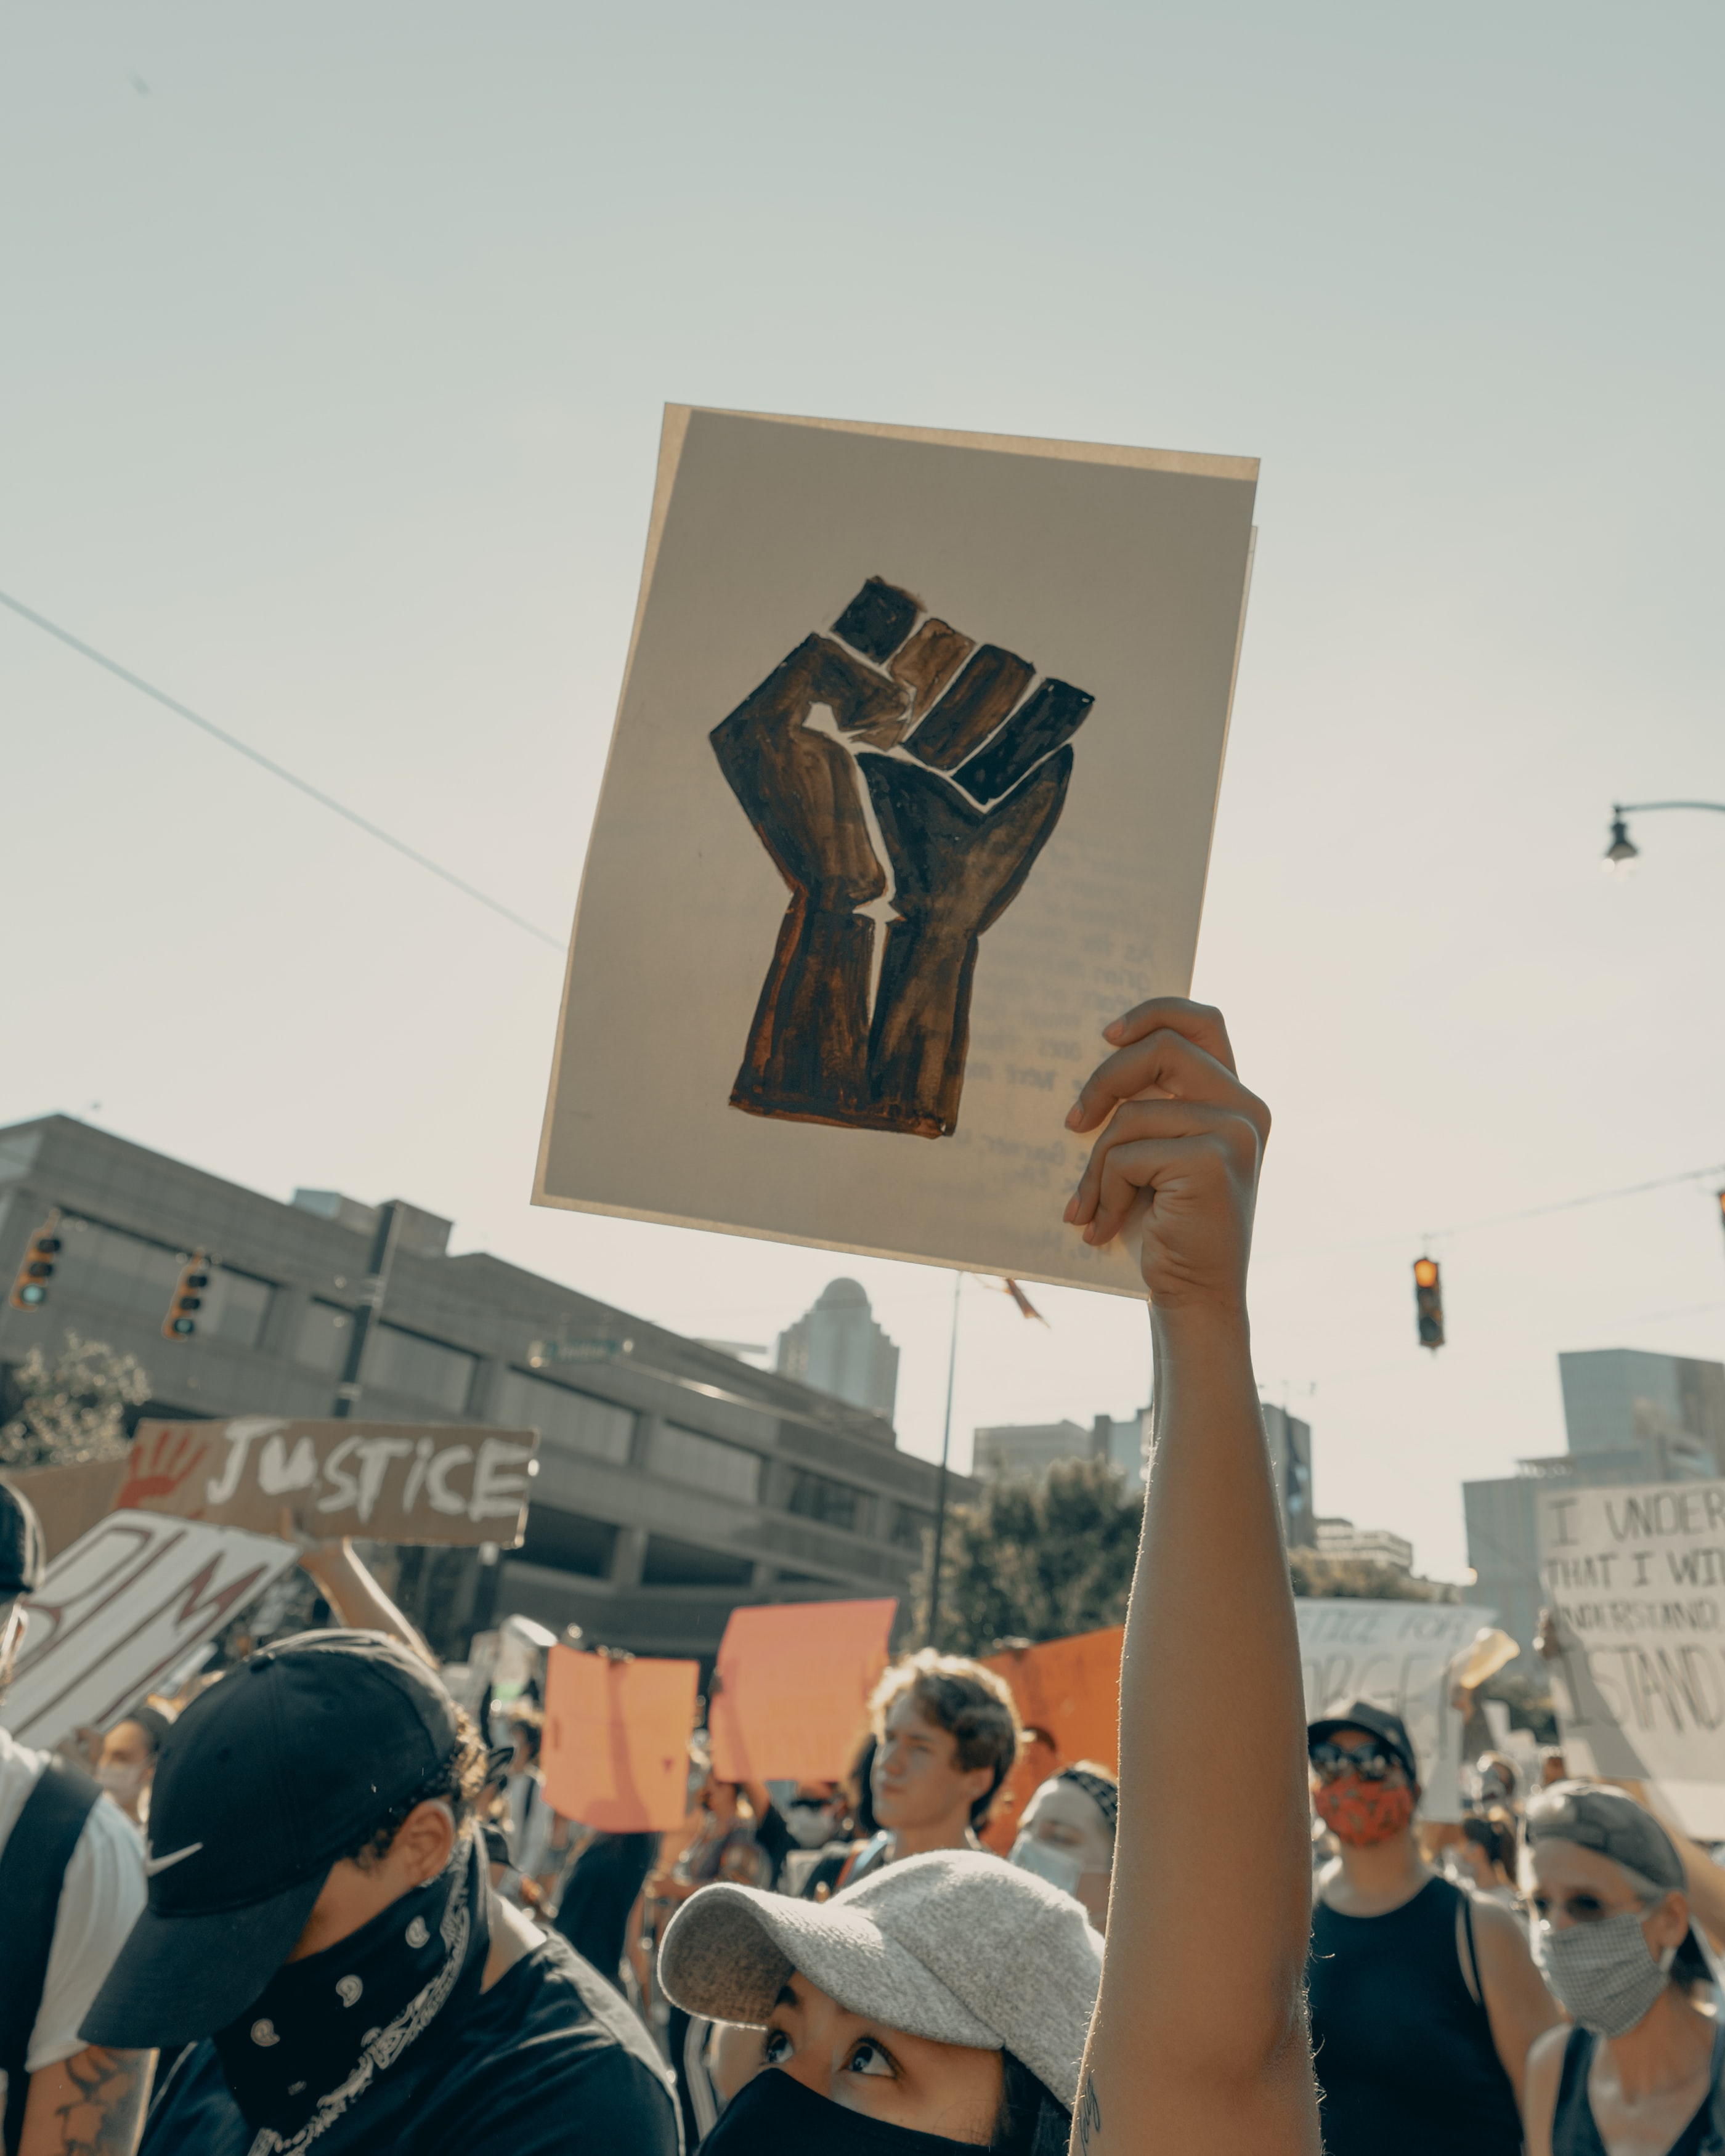 Protests and the role of Corporations